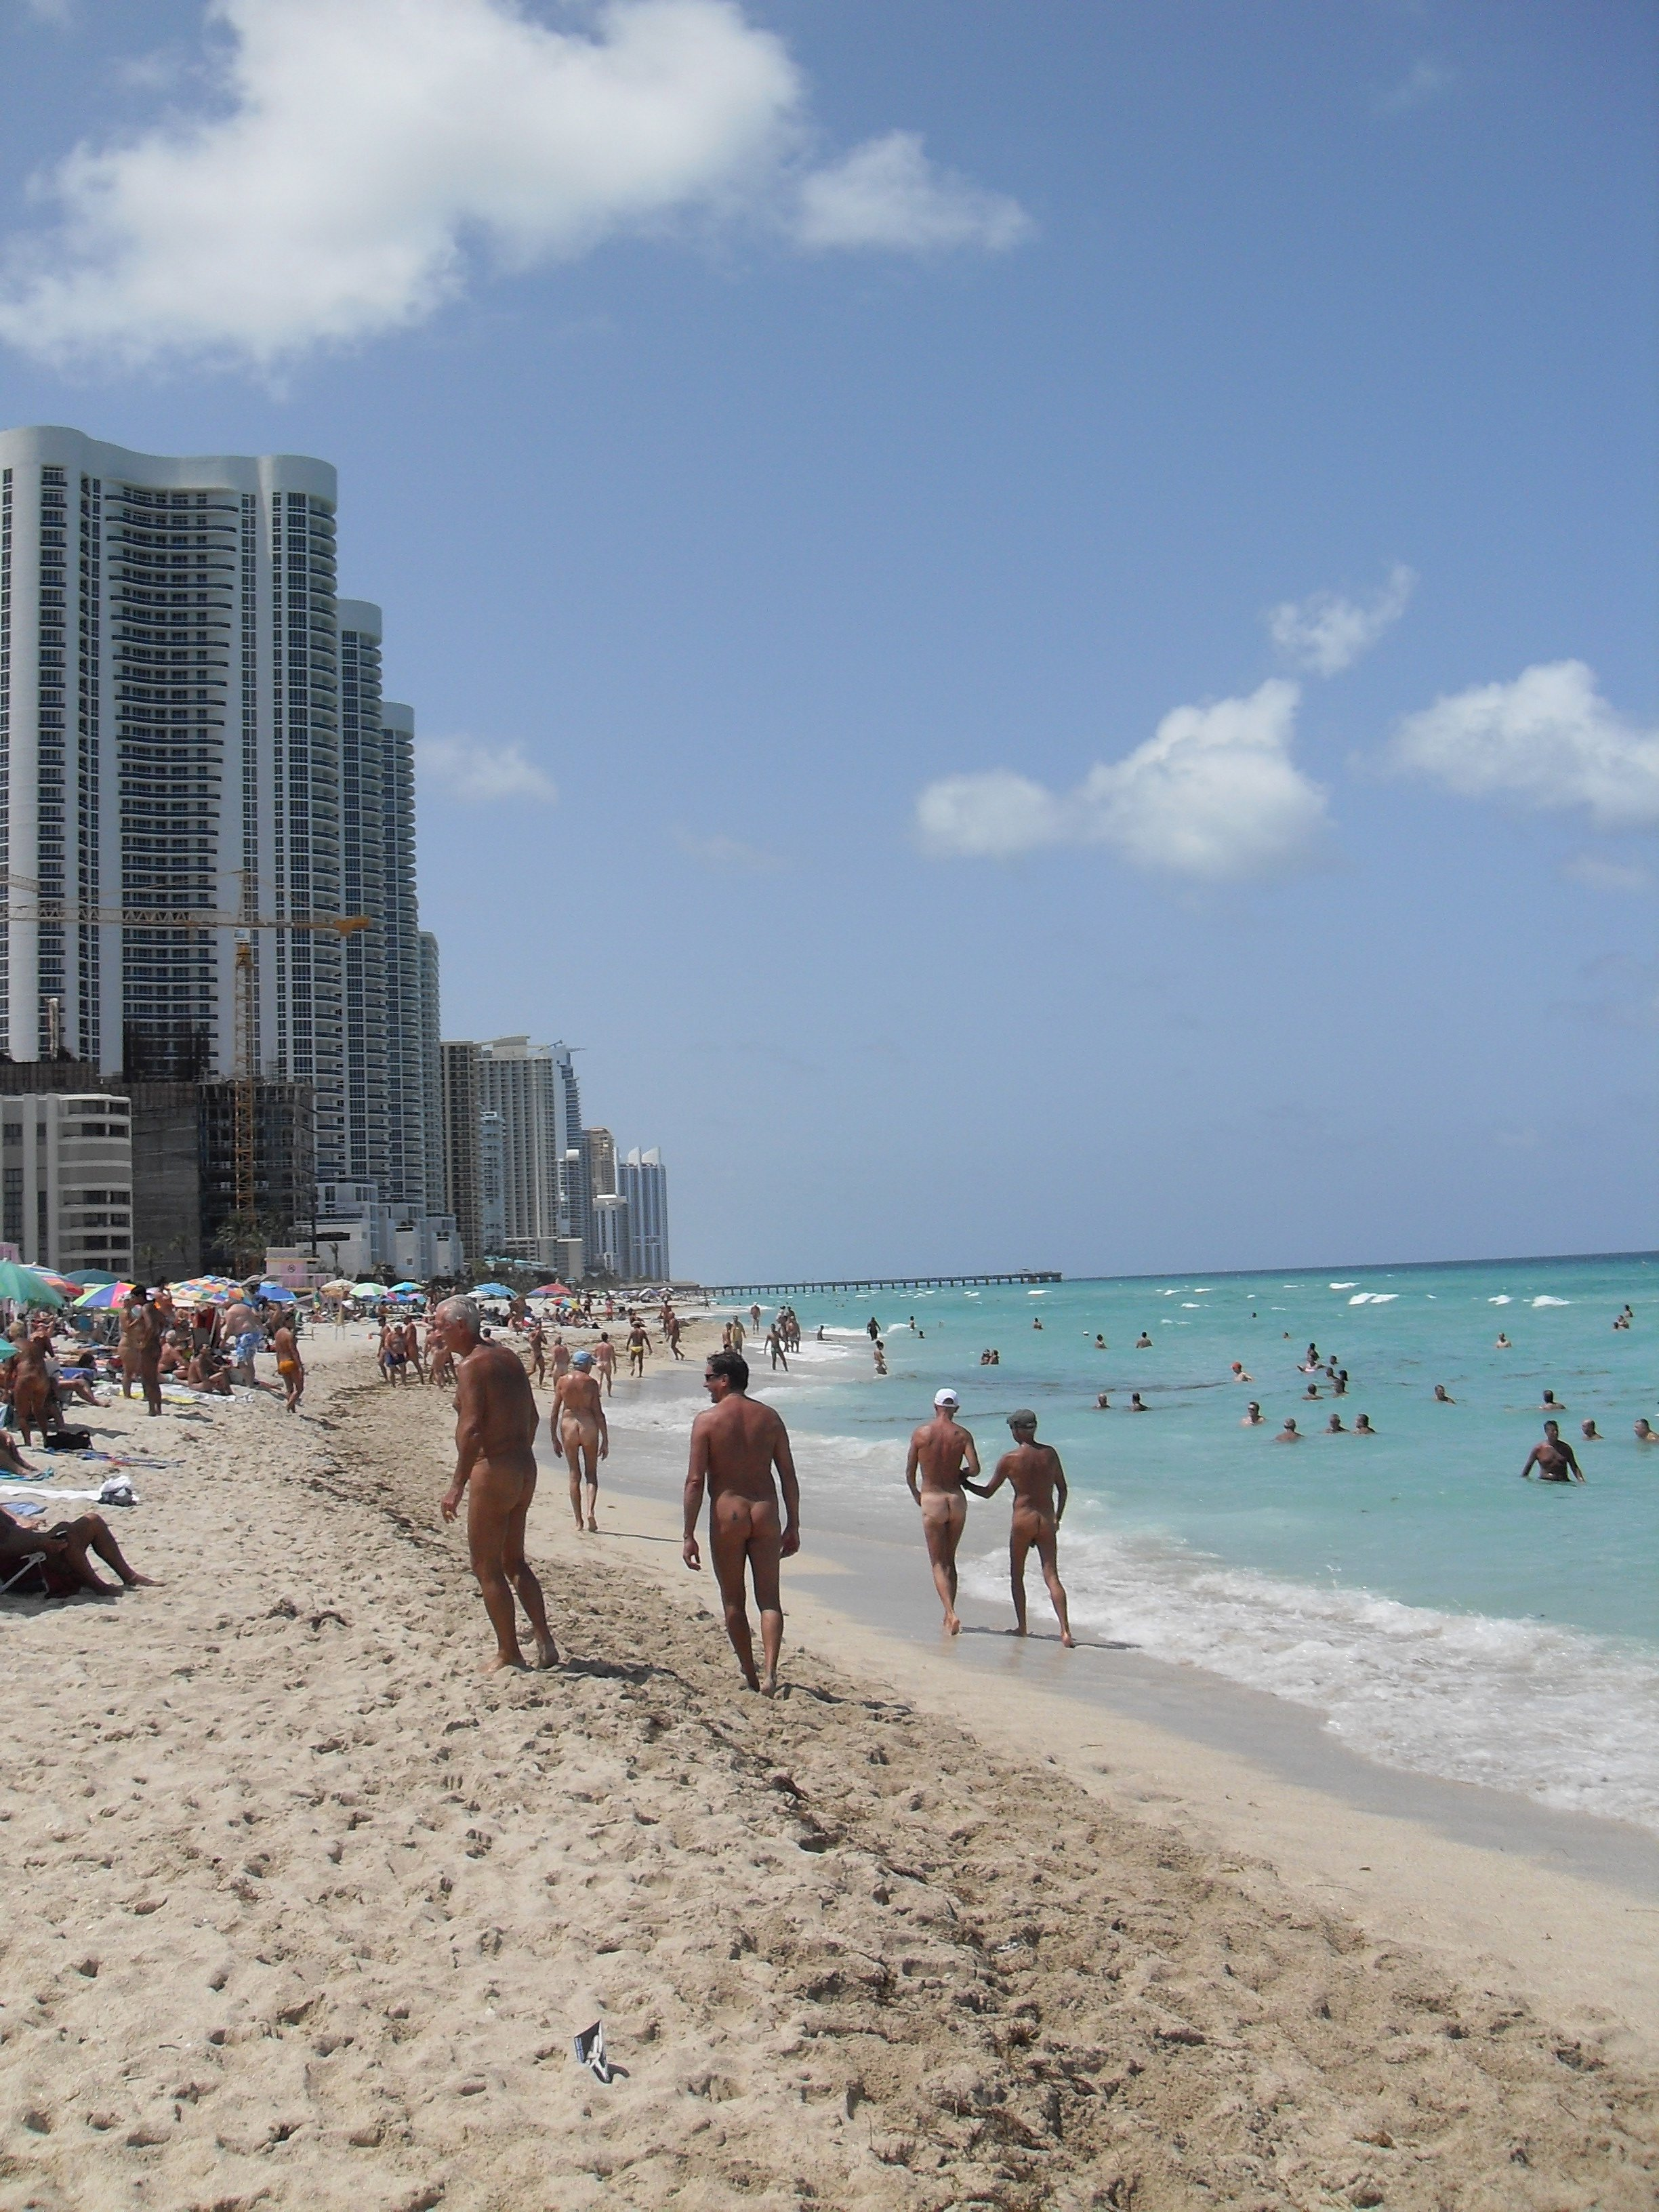 Description Haulover-Beach-high-rise-buildings.JPG